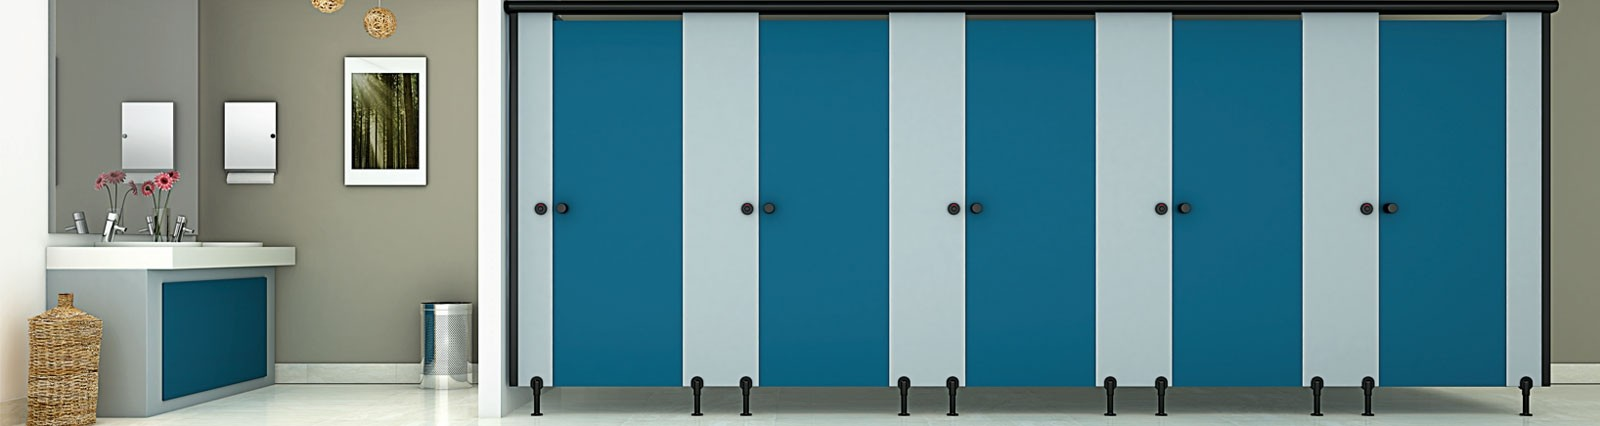 Restroom Cubicles & Locker Solutions